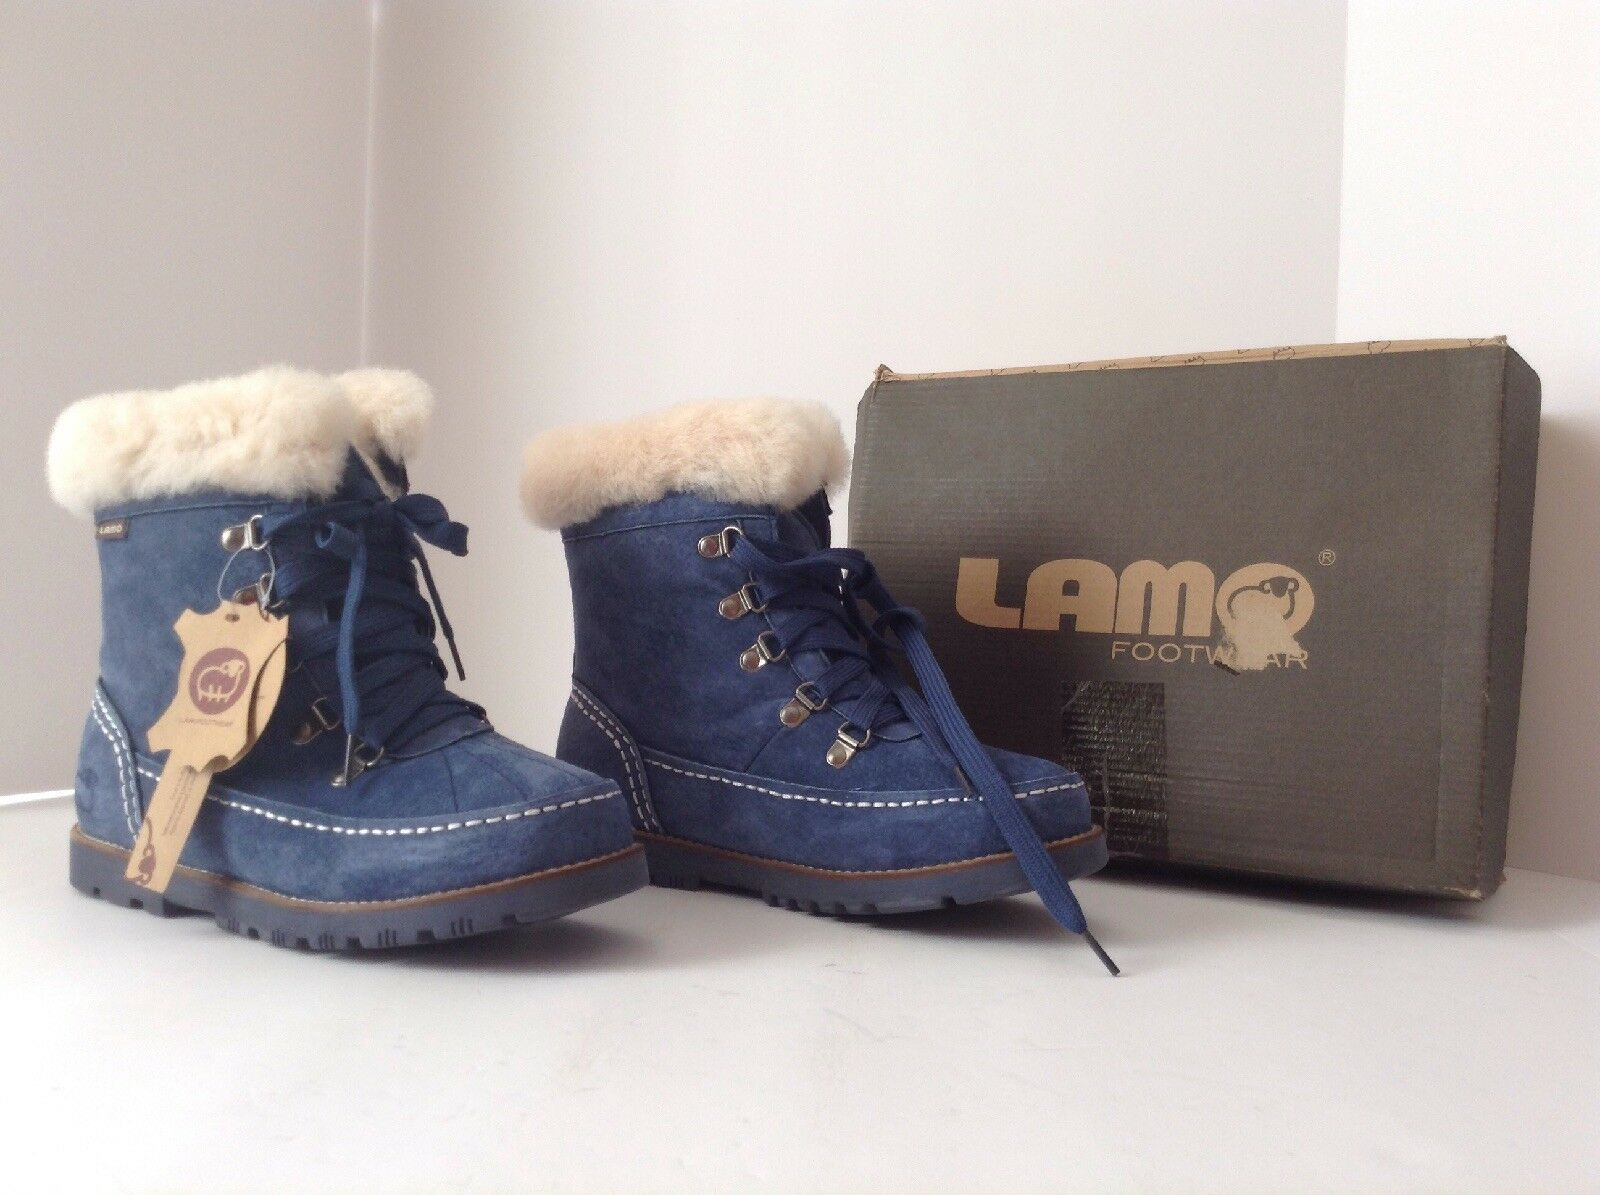 LAMO Women's Lace-up Ankle Boots with Fur Lining - Taylor - Navy - Sz 6 medium